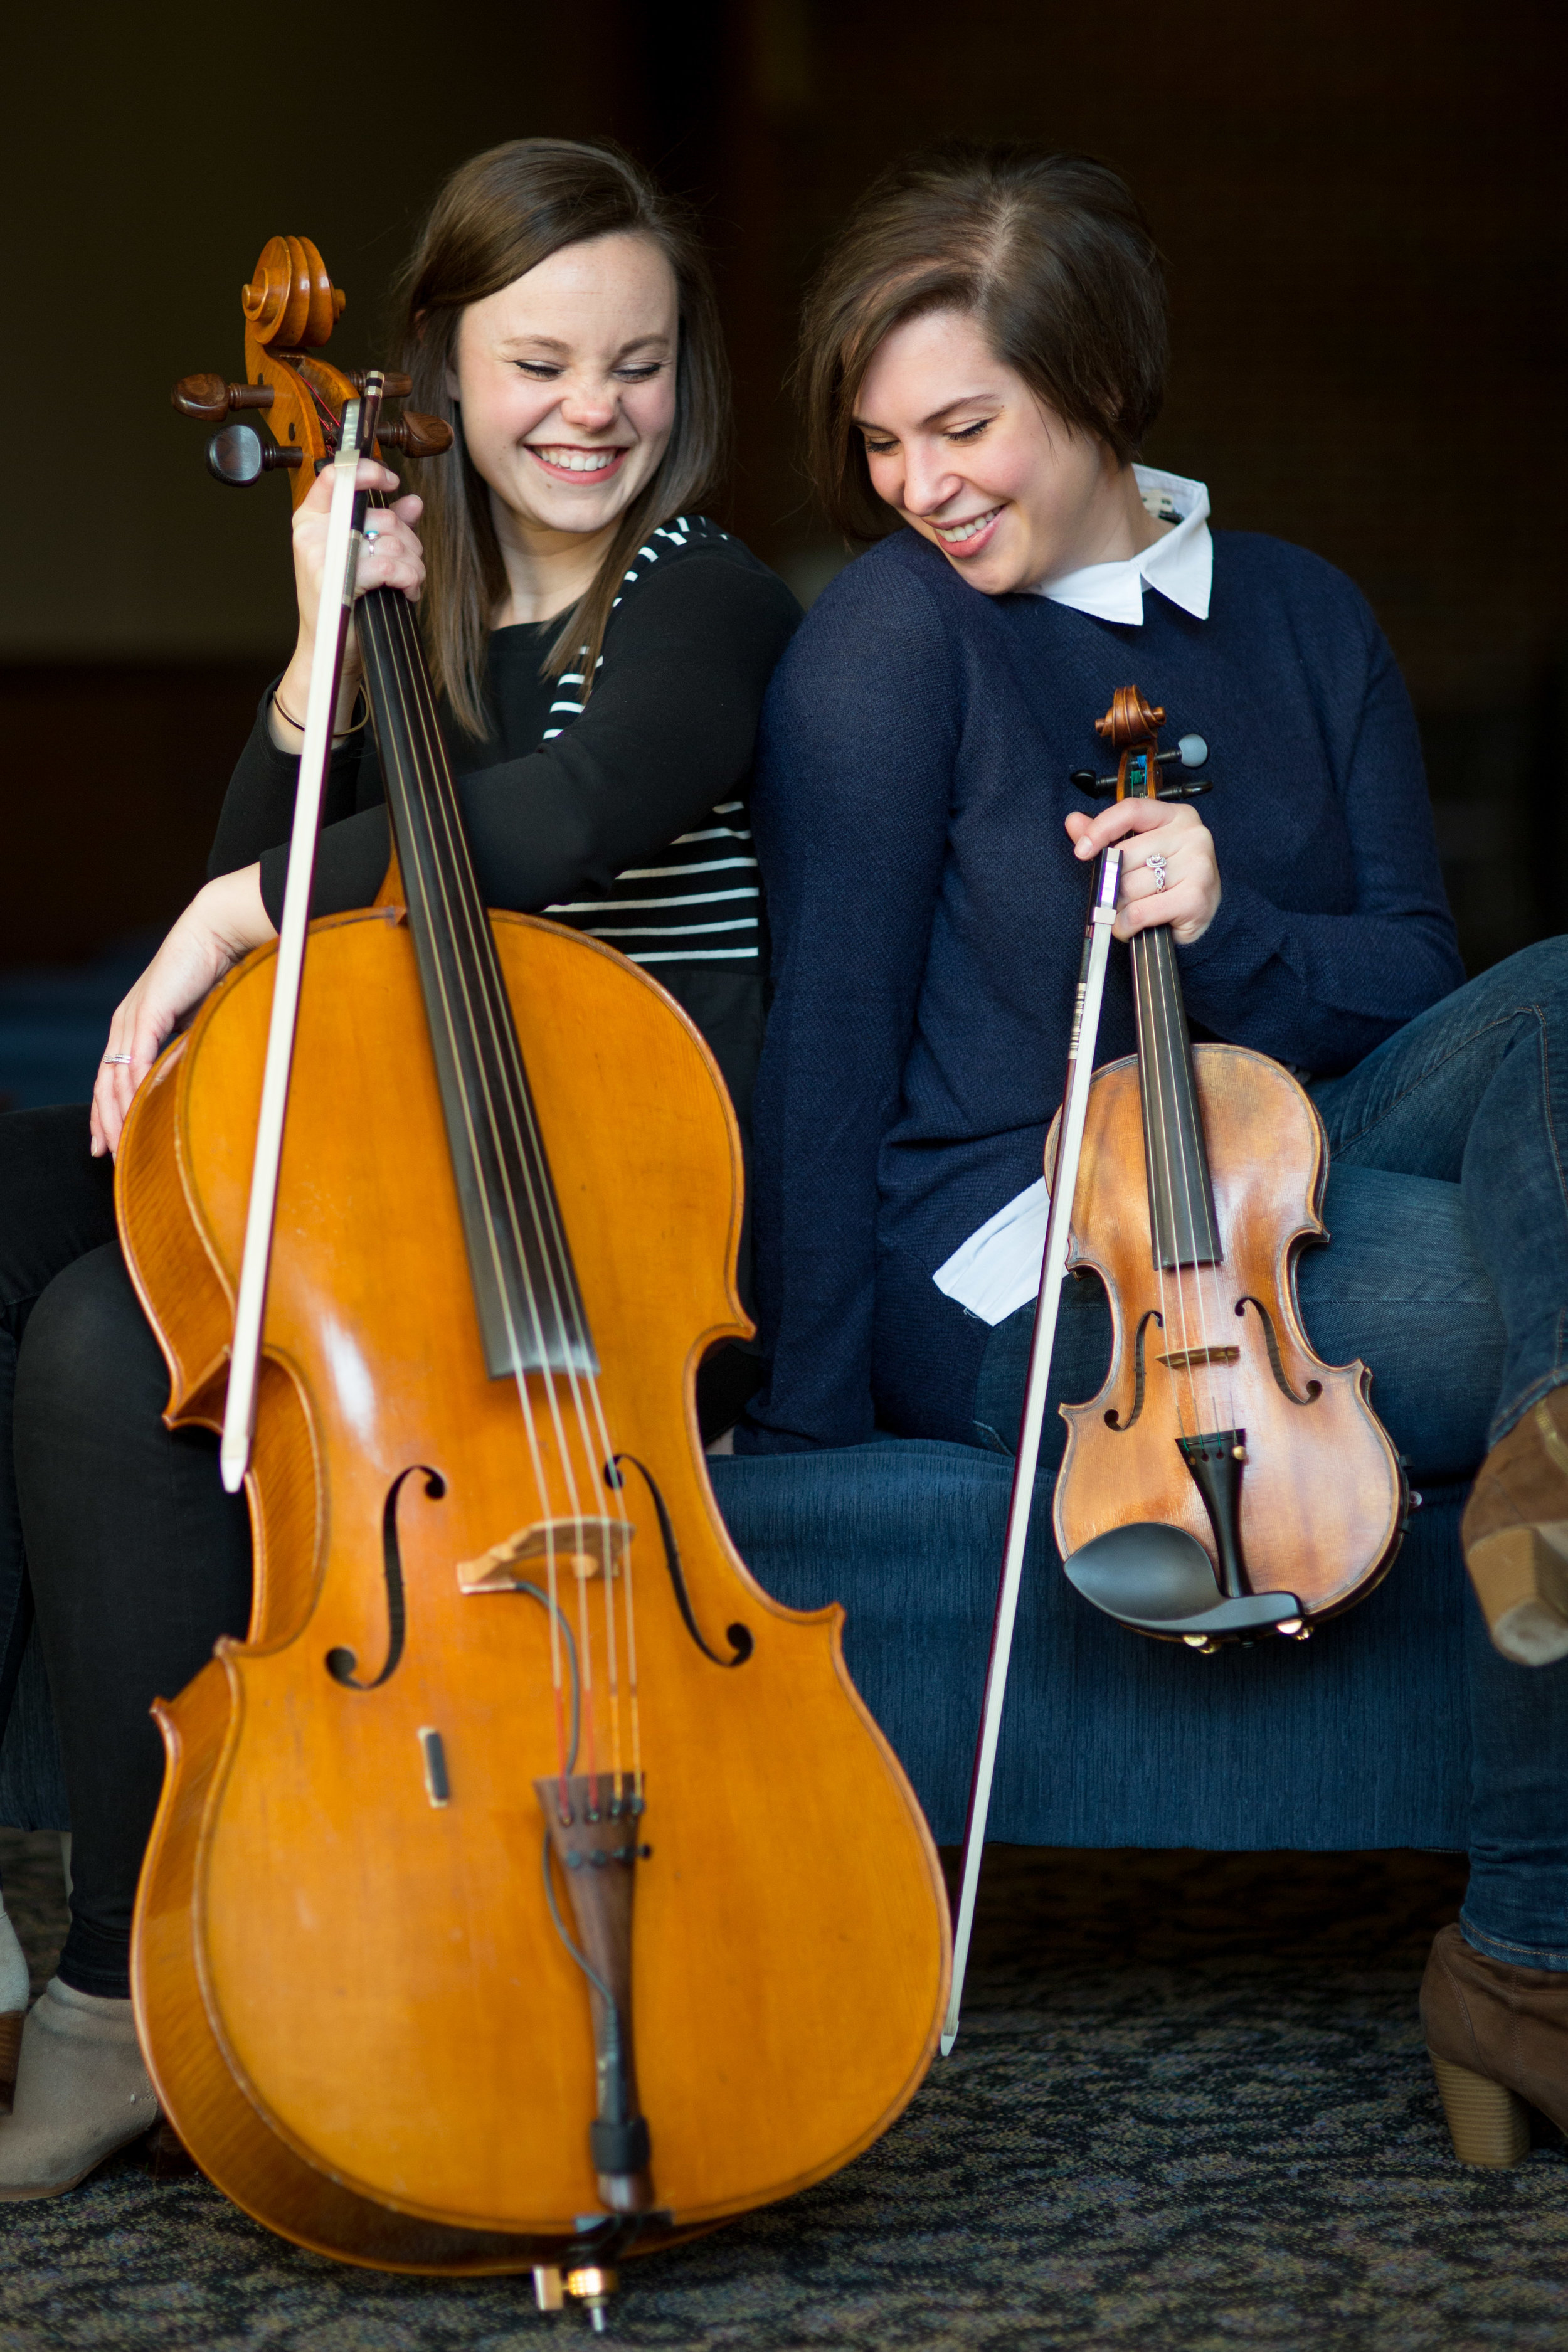 Olivia Diercks, cello and Karla Colahan, violin